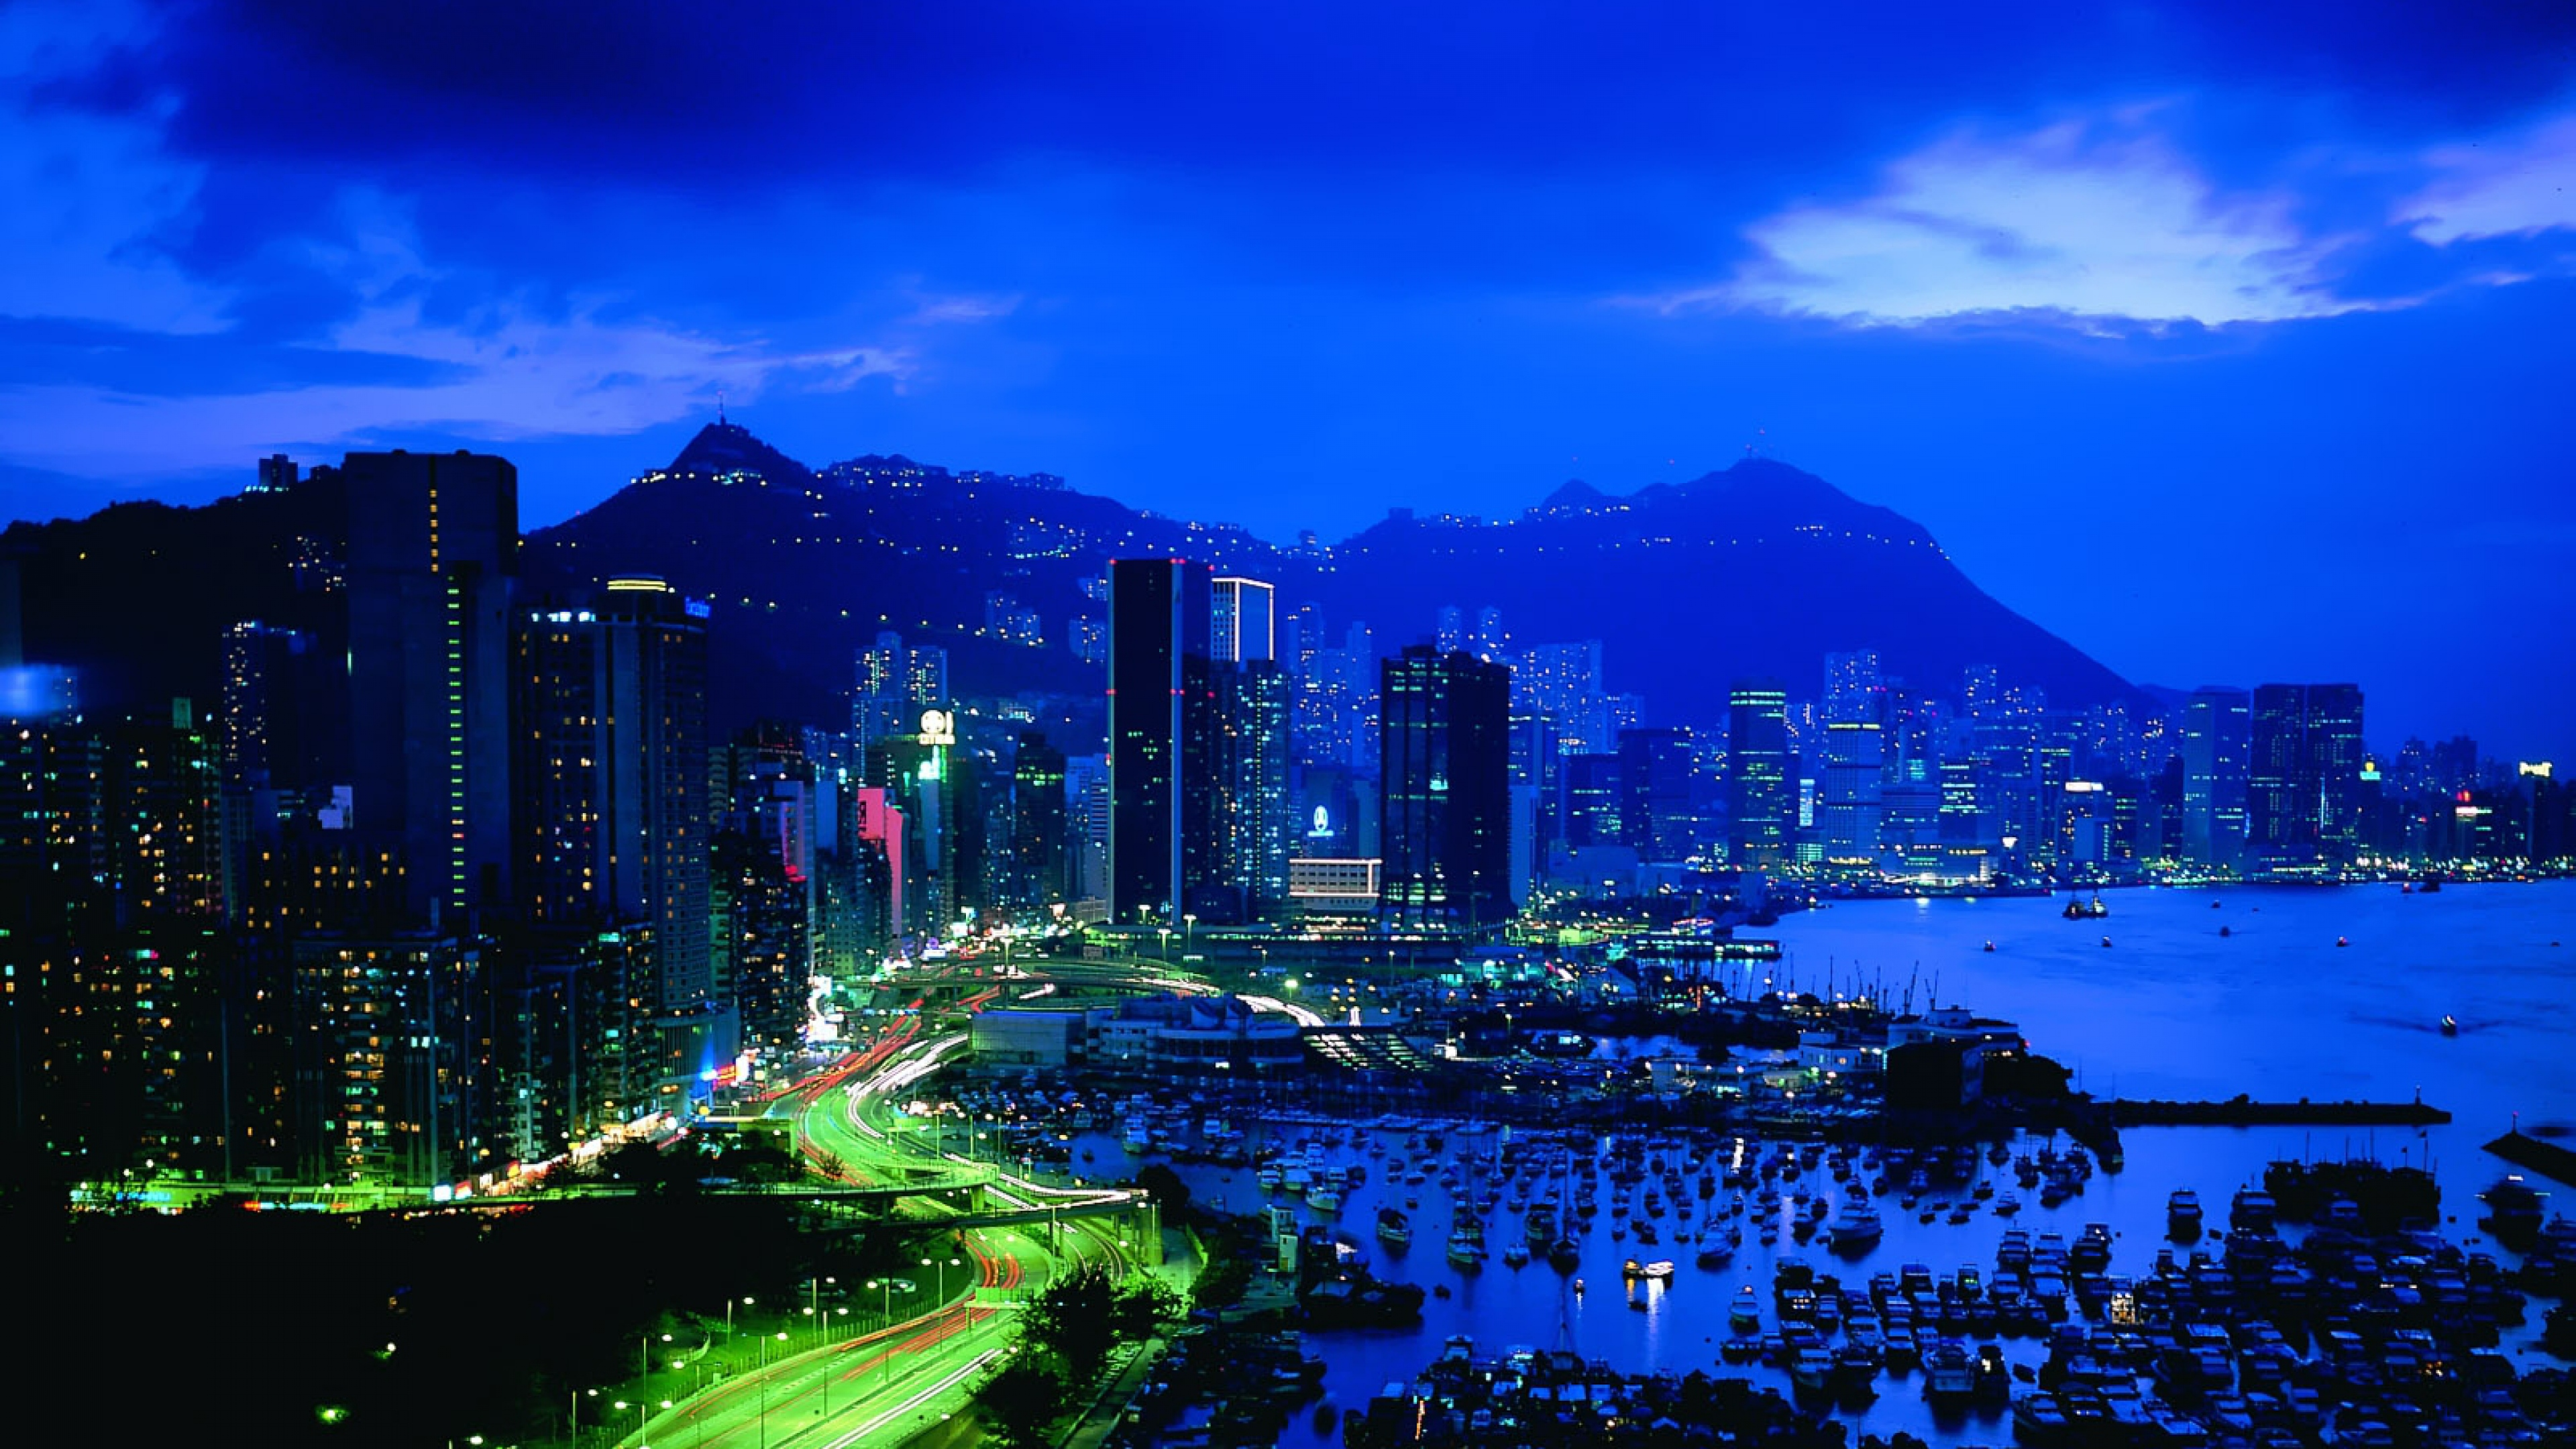 4k-ultra-hd-wallpaper-Hong-Kong-unabuenaidea.es (2)